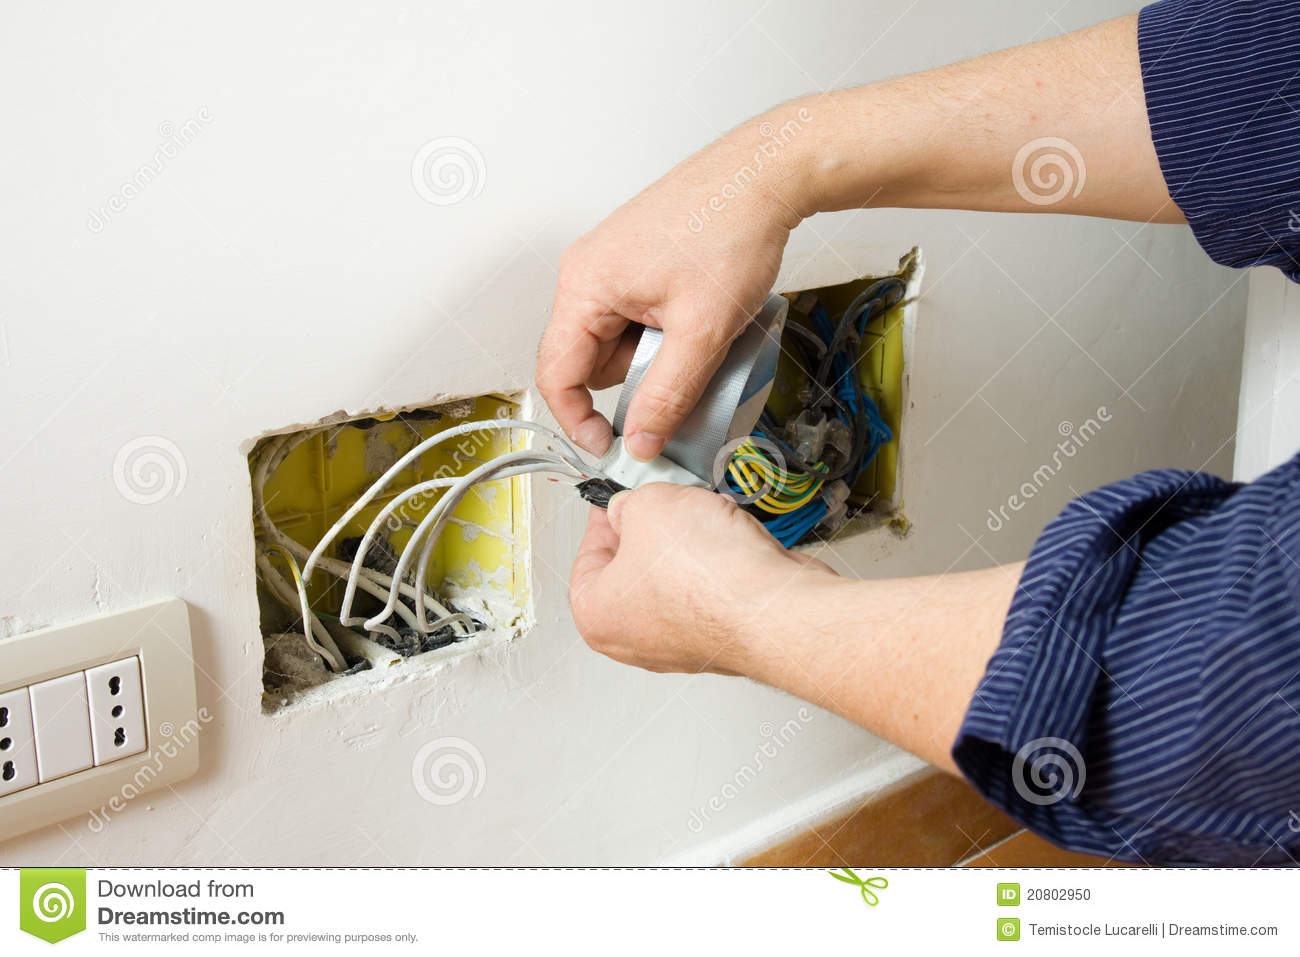 Electrician At Work Stock Photo - Image: 20802950